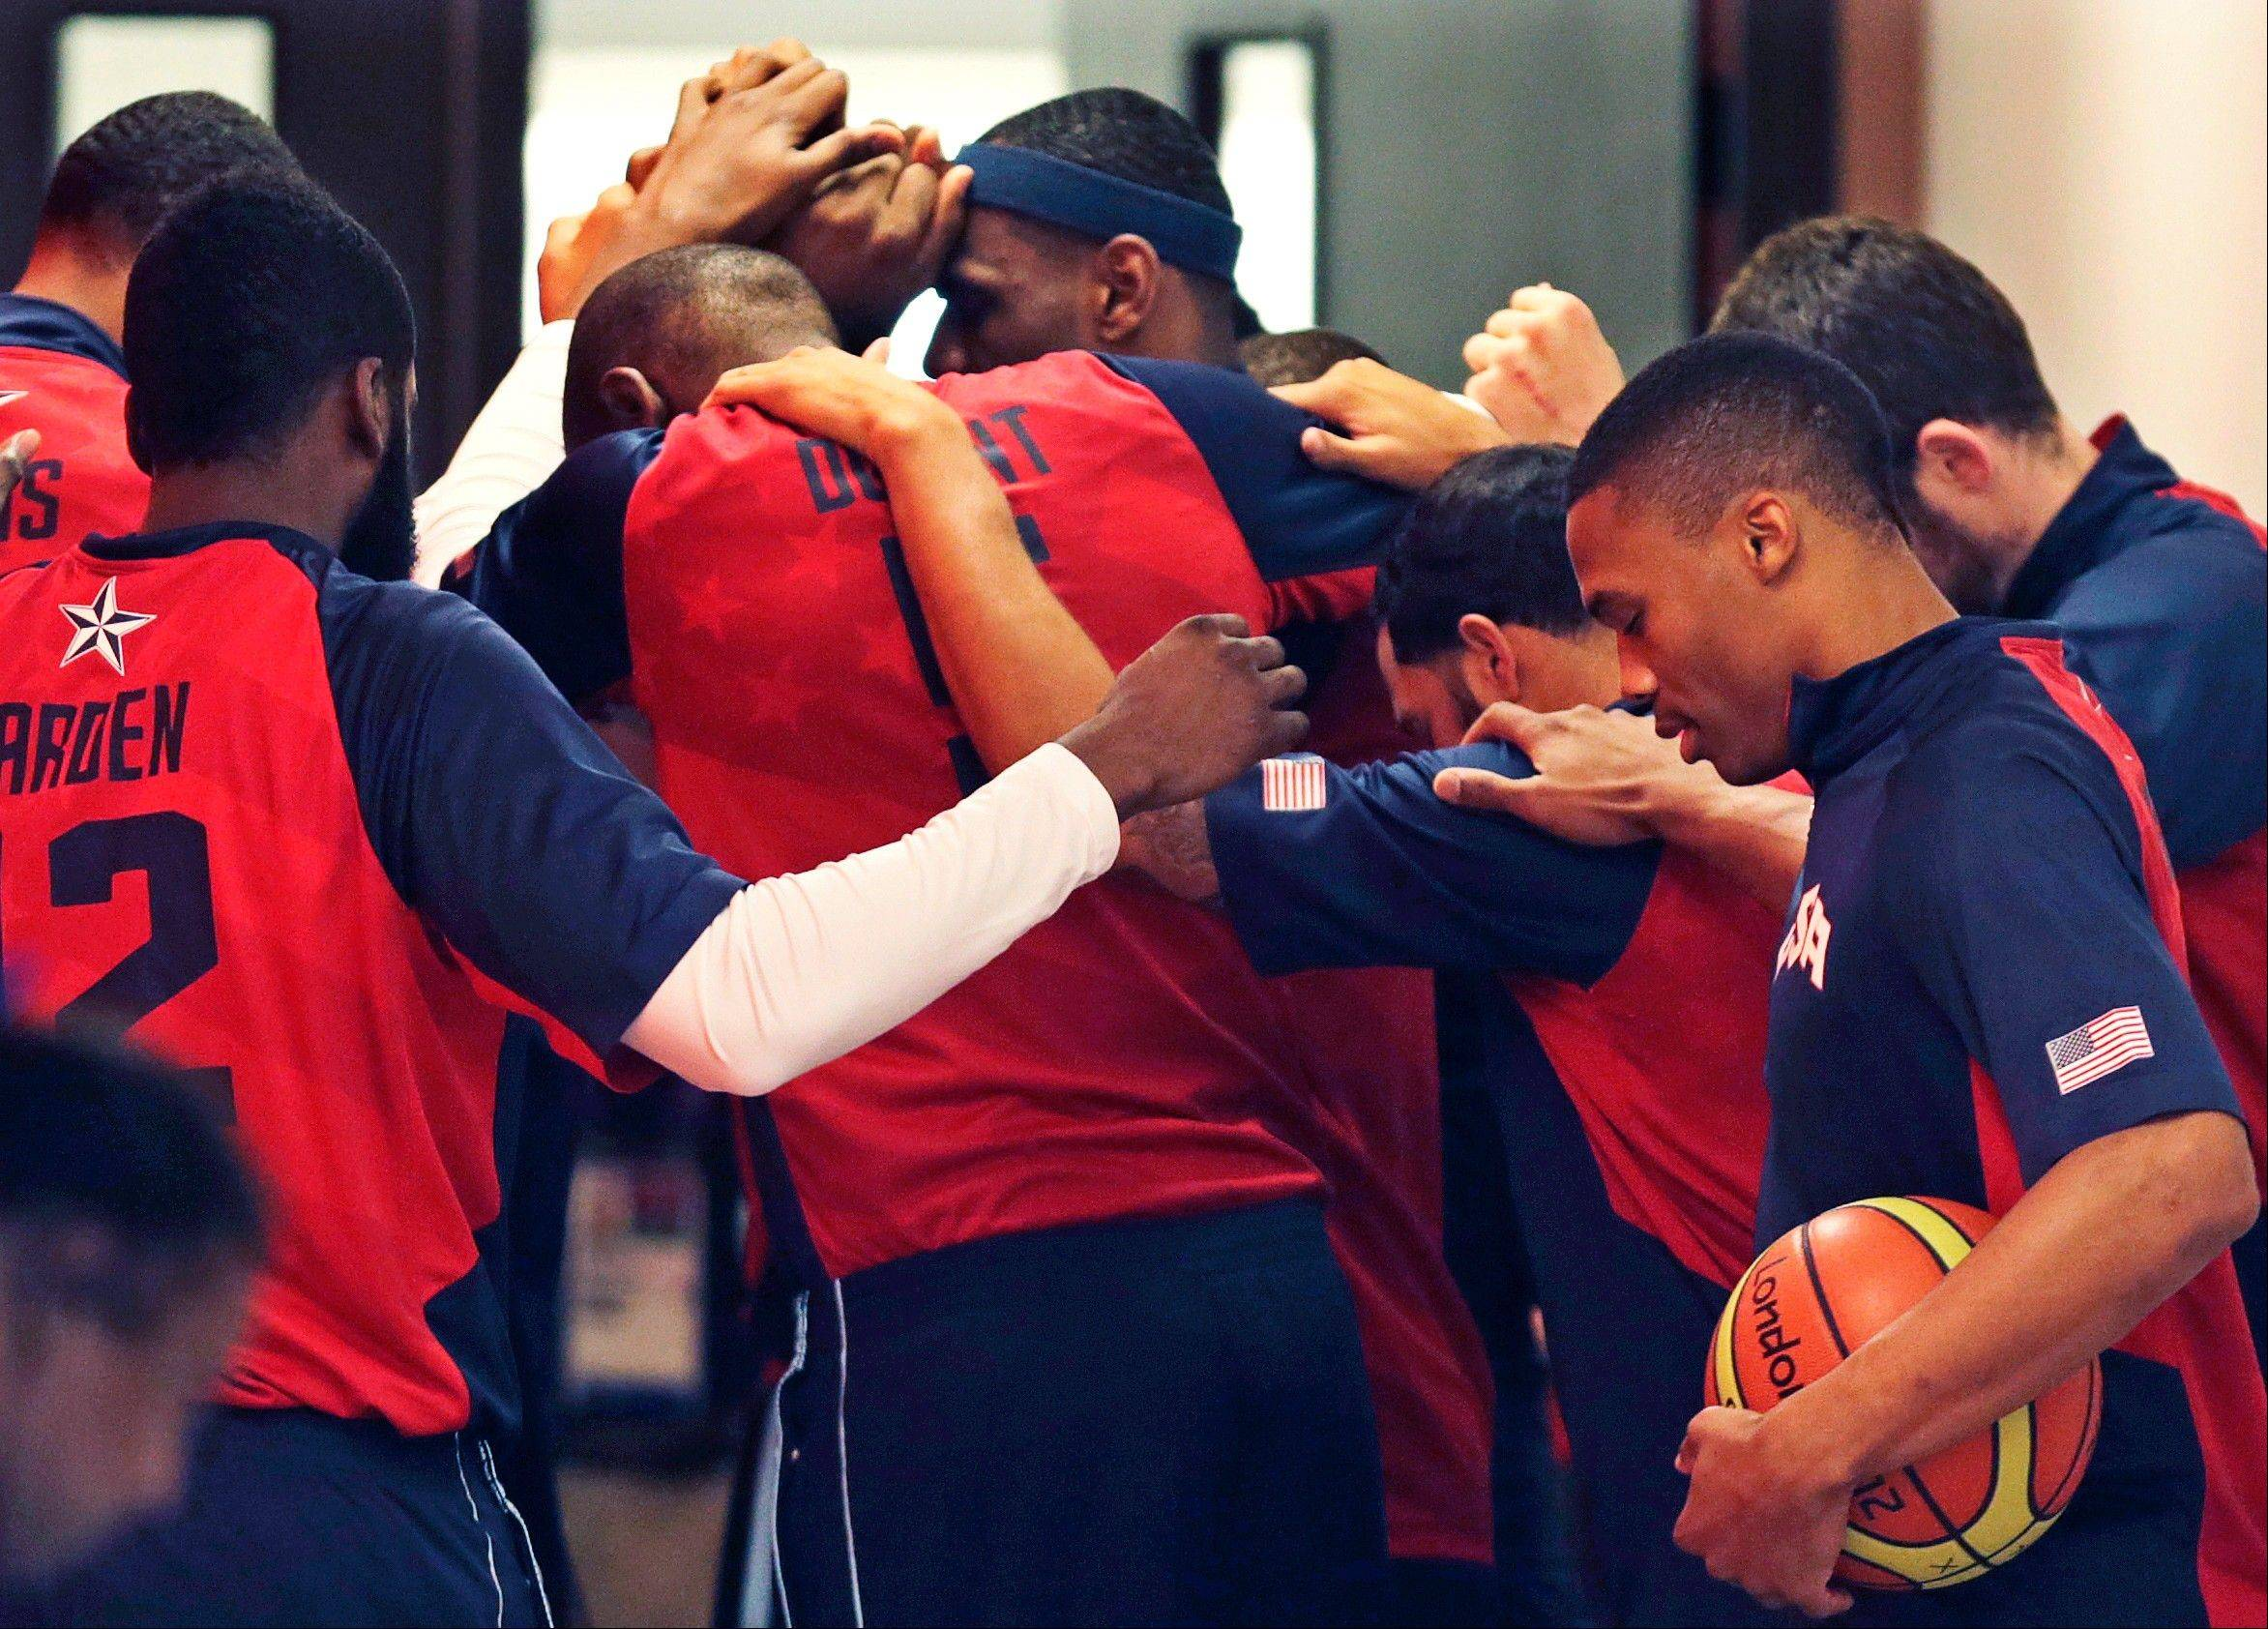 The United States team gathers around LeBron James, center with head band, prior to a men's basketball game against Lithuania at the 2012 Summer Olympics, Saturday, Aug. 4, 2012, in London.